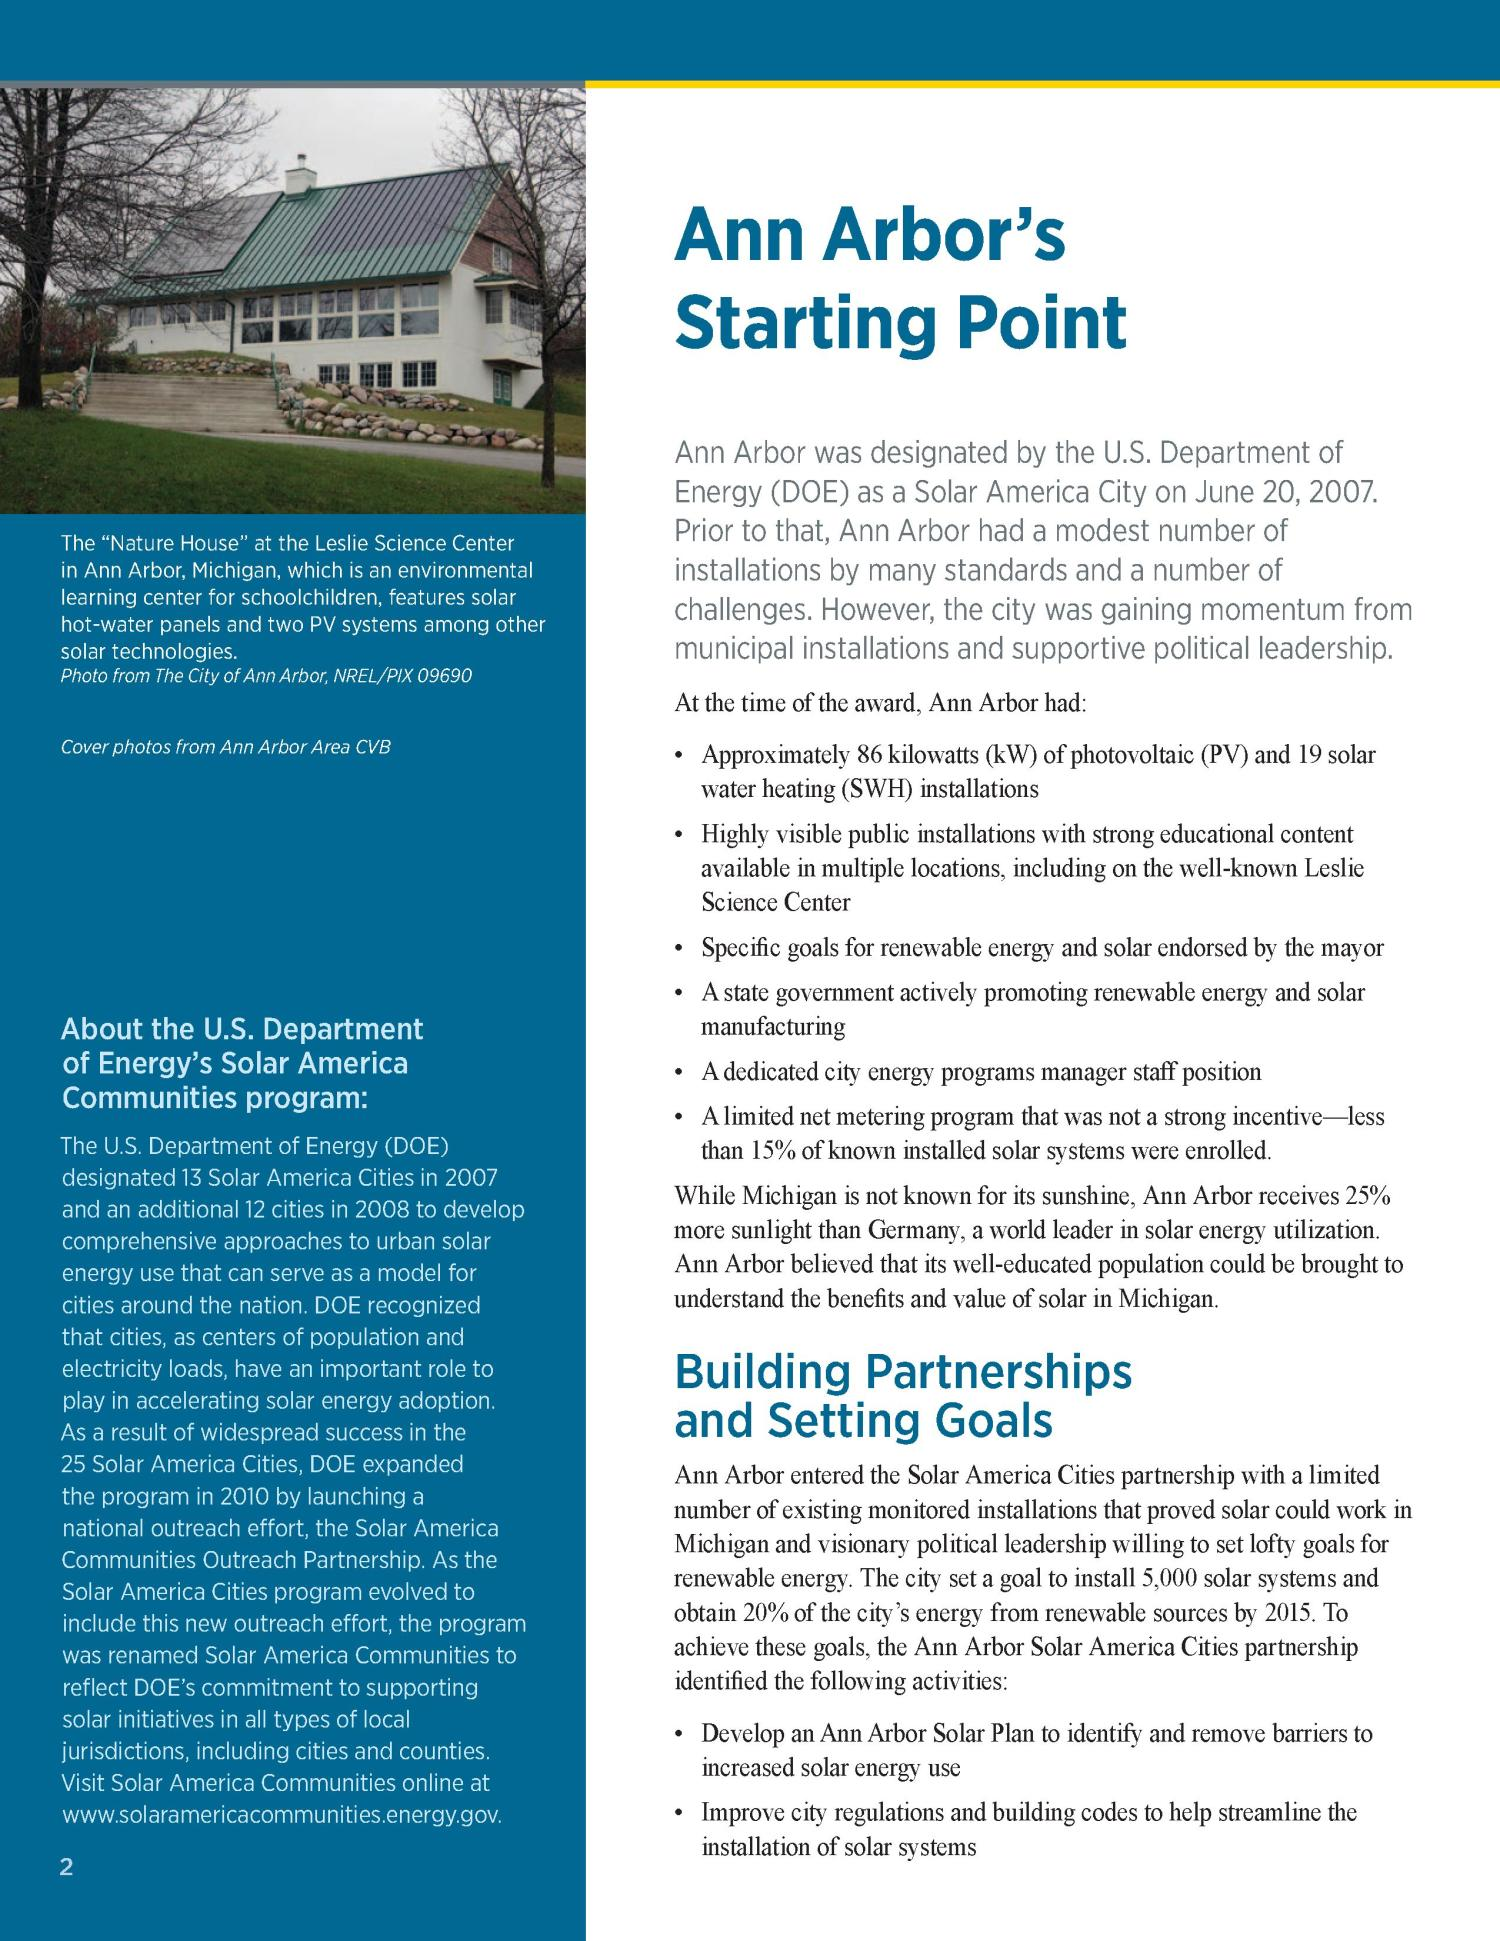 Ann Arbor, Michigan: Solar in Action (Brochure)                                                                                                      [Sequence #]: 2 of 8